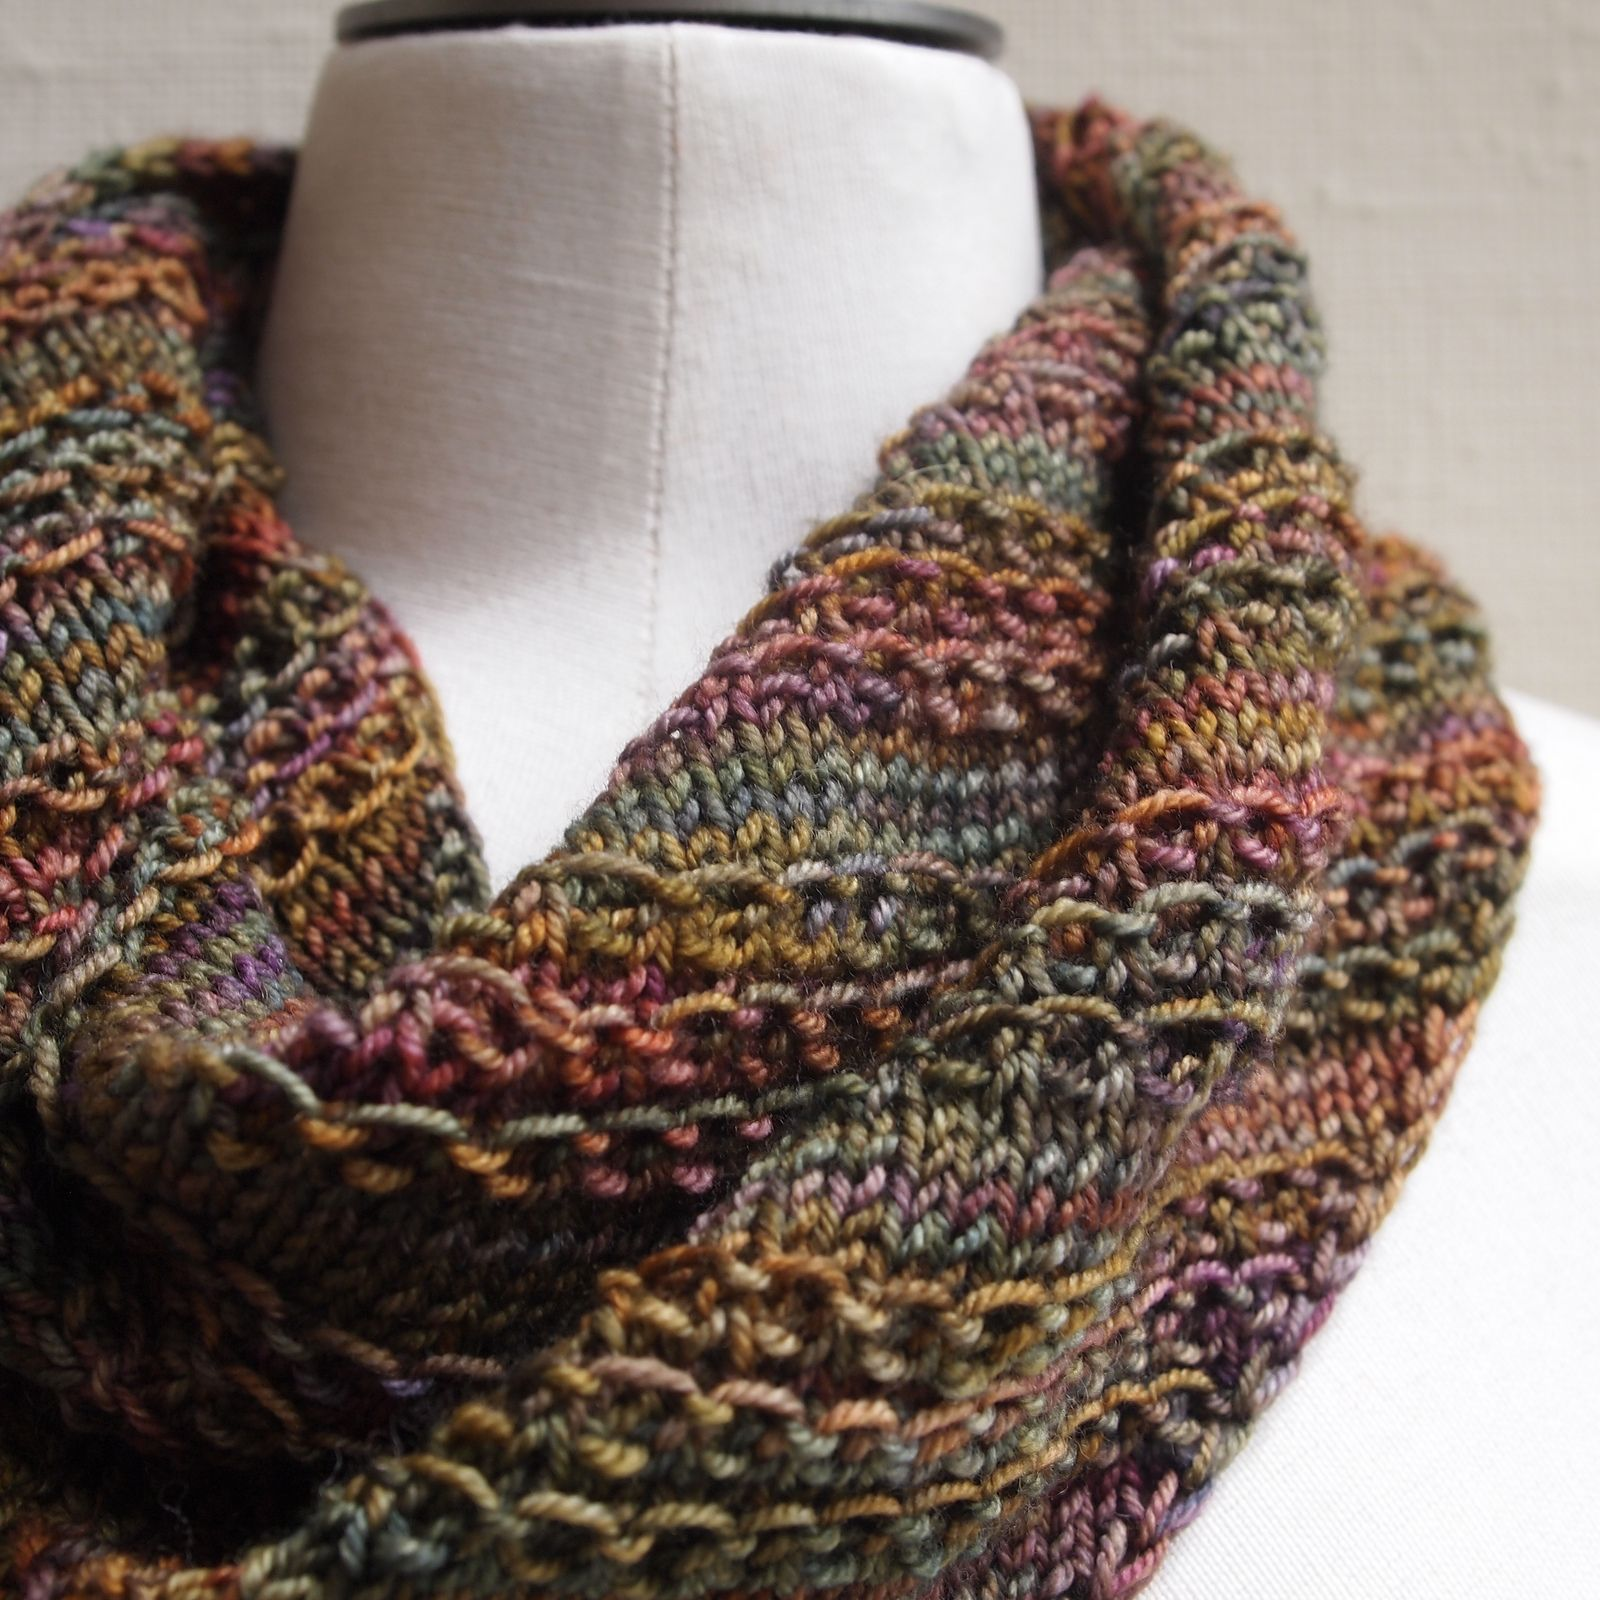 Ravelry: That Nice Stitch by Susan Ashcroft | Crochet and Knitting ...